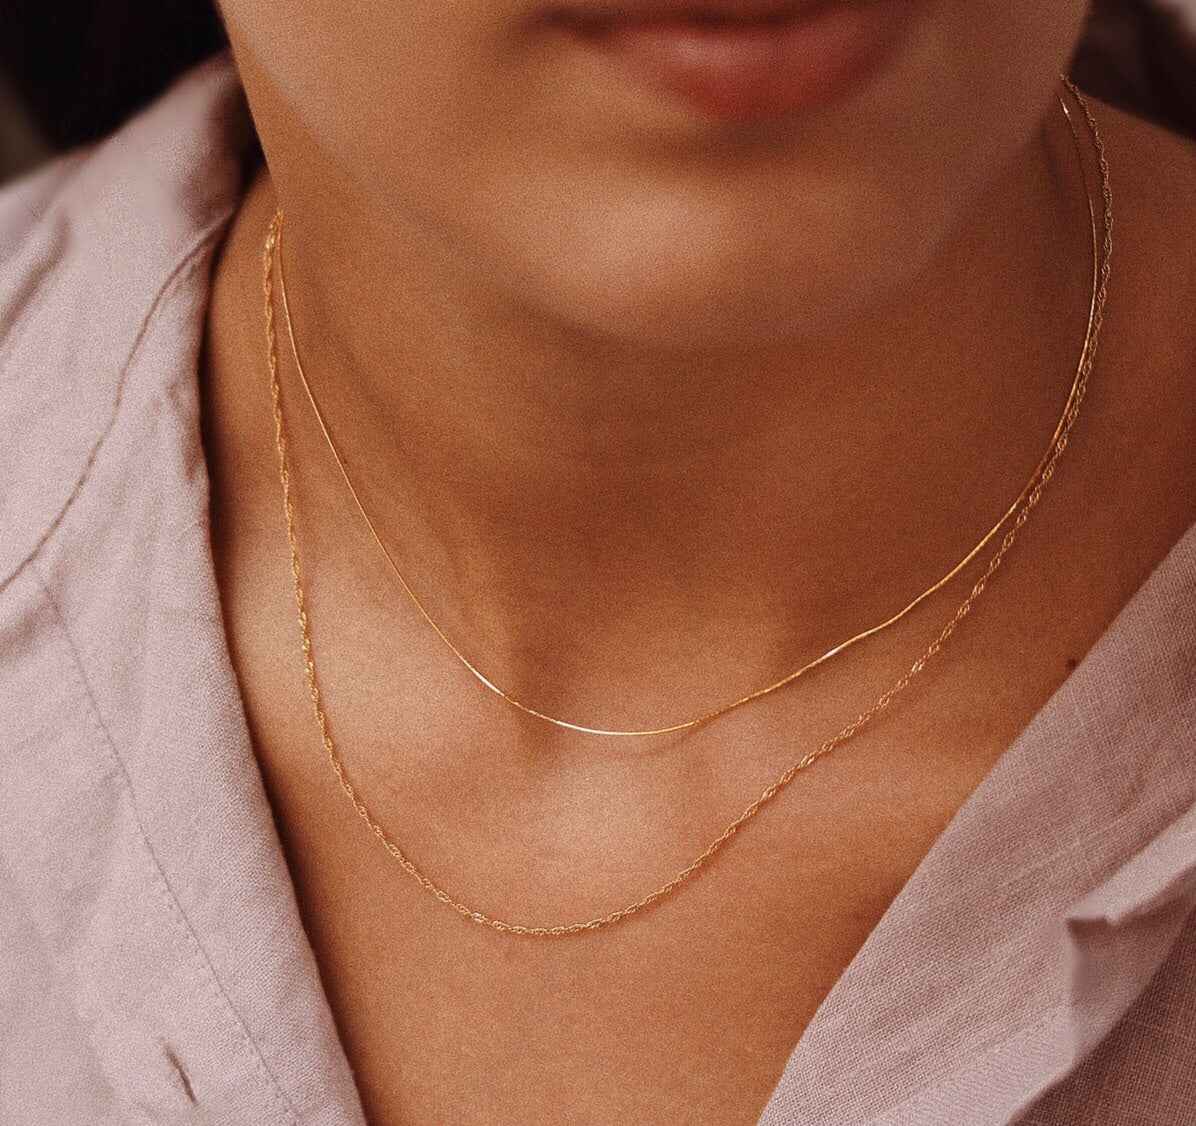 Ladder Chain Necklace